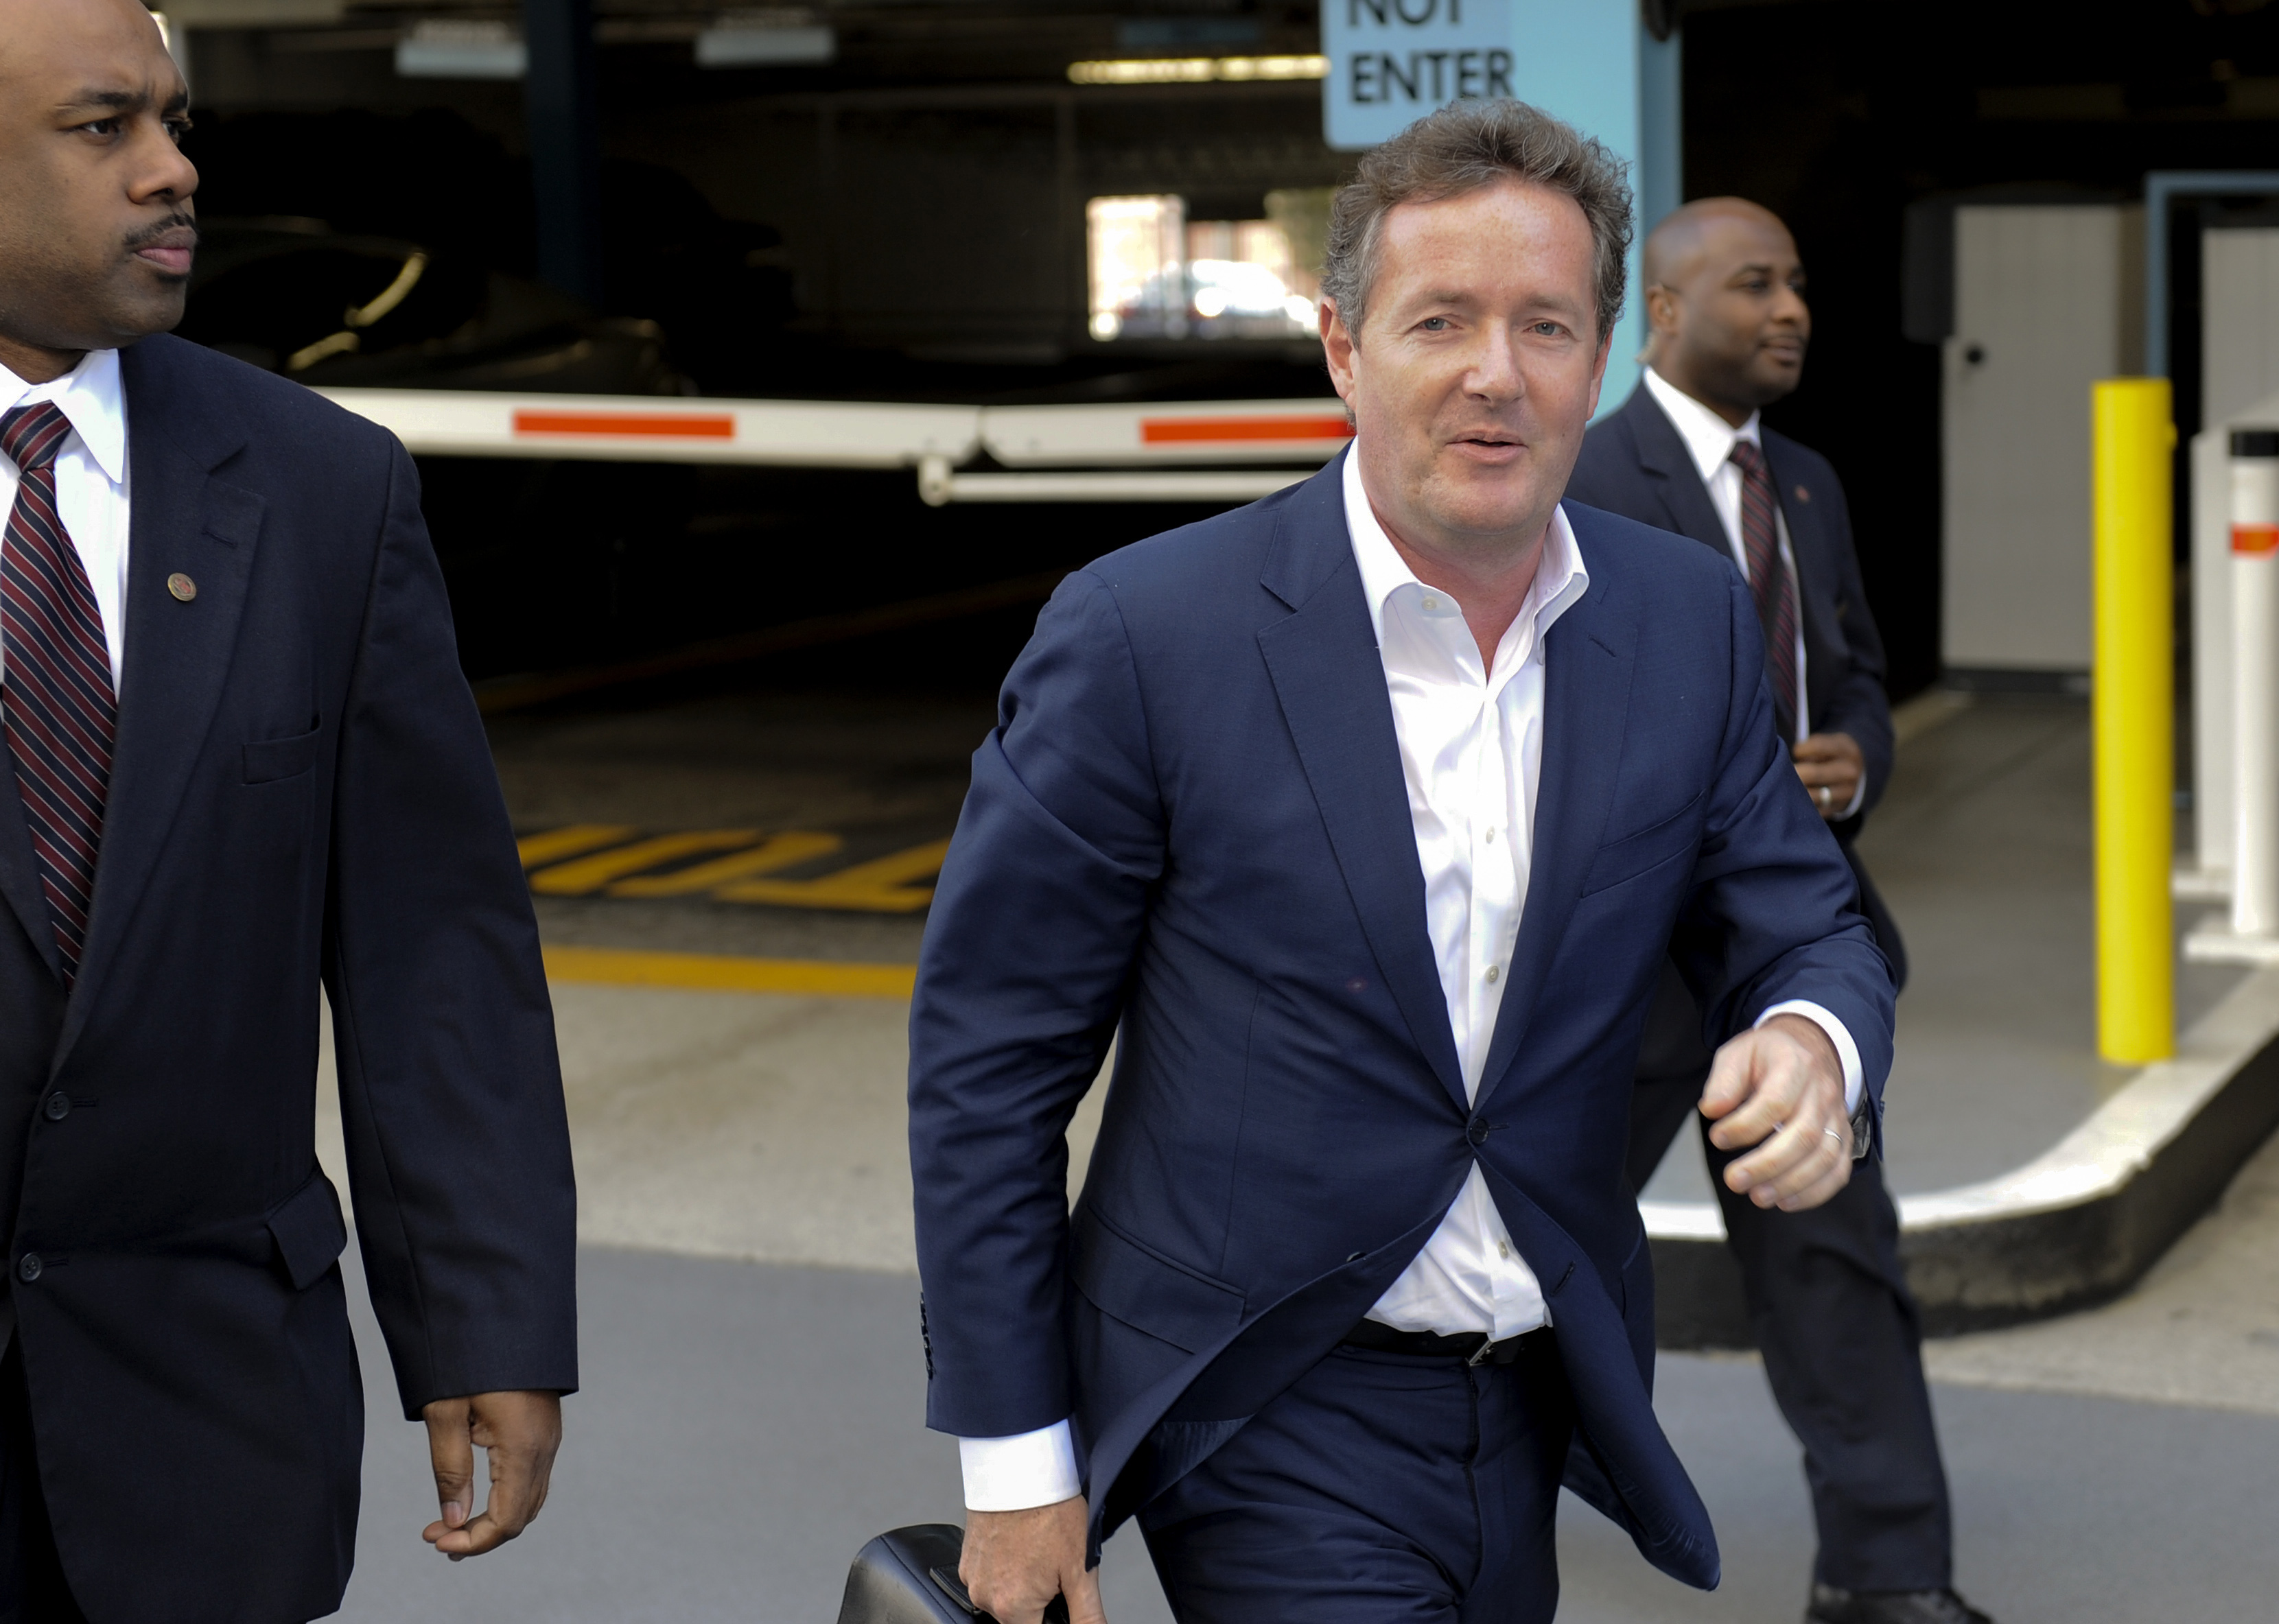 British talk show host Piers Morgan and former News of the World editor arrives for work at CNN after his British judicial inquiry in Los Angeles, California December 20, 2011. Morgan told a British judicial inquiry on Tuesday that he had never approved phone hacking during his time as a tabloid newspaper editor, and that his published boasts had merely been repeating rumours about journalistic ``dark arts.'' REUTERS/Gus Ruelas (UNITED STATES - Tags: CRIME LAW ENTERTAINMENT MEDIA)